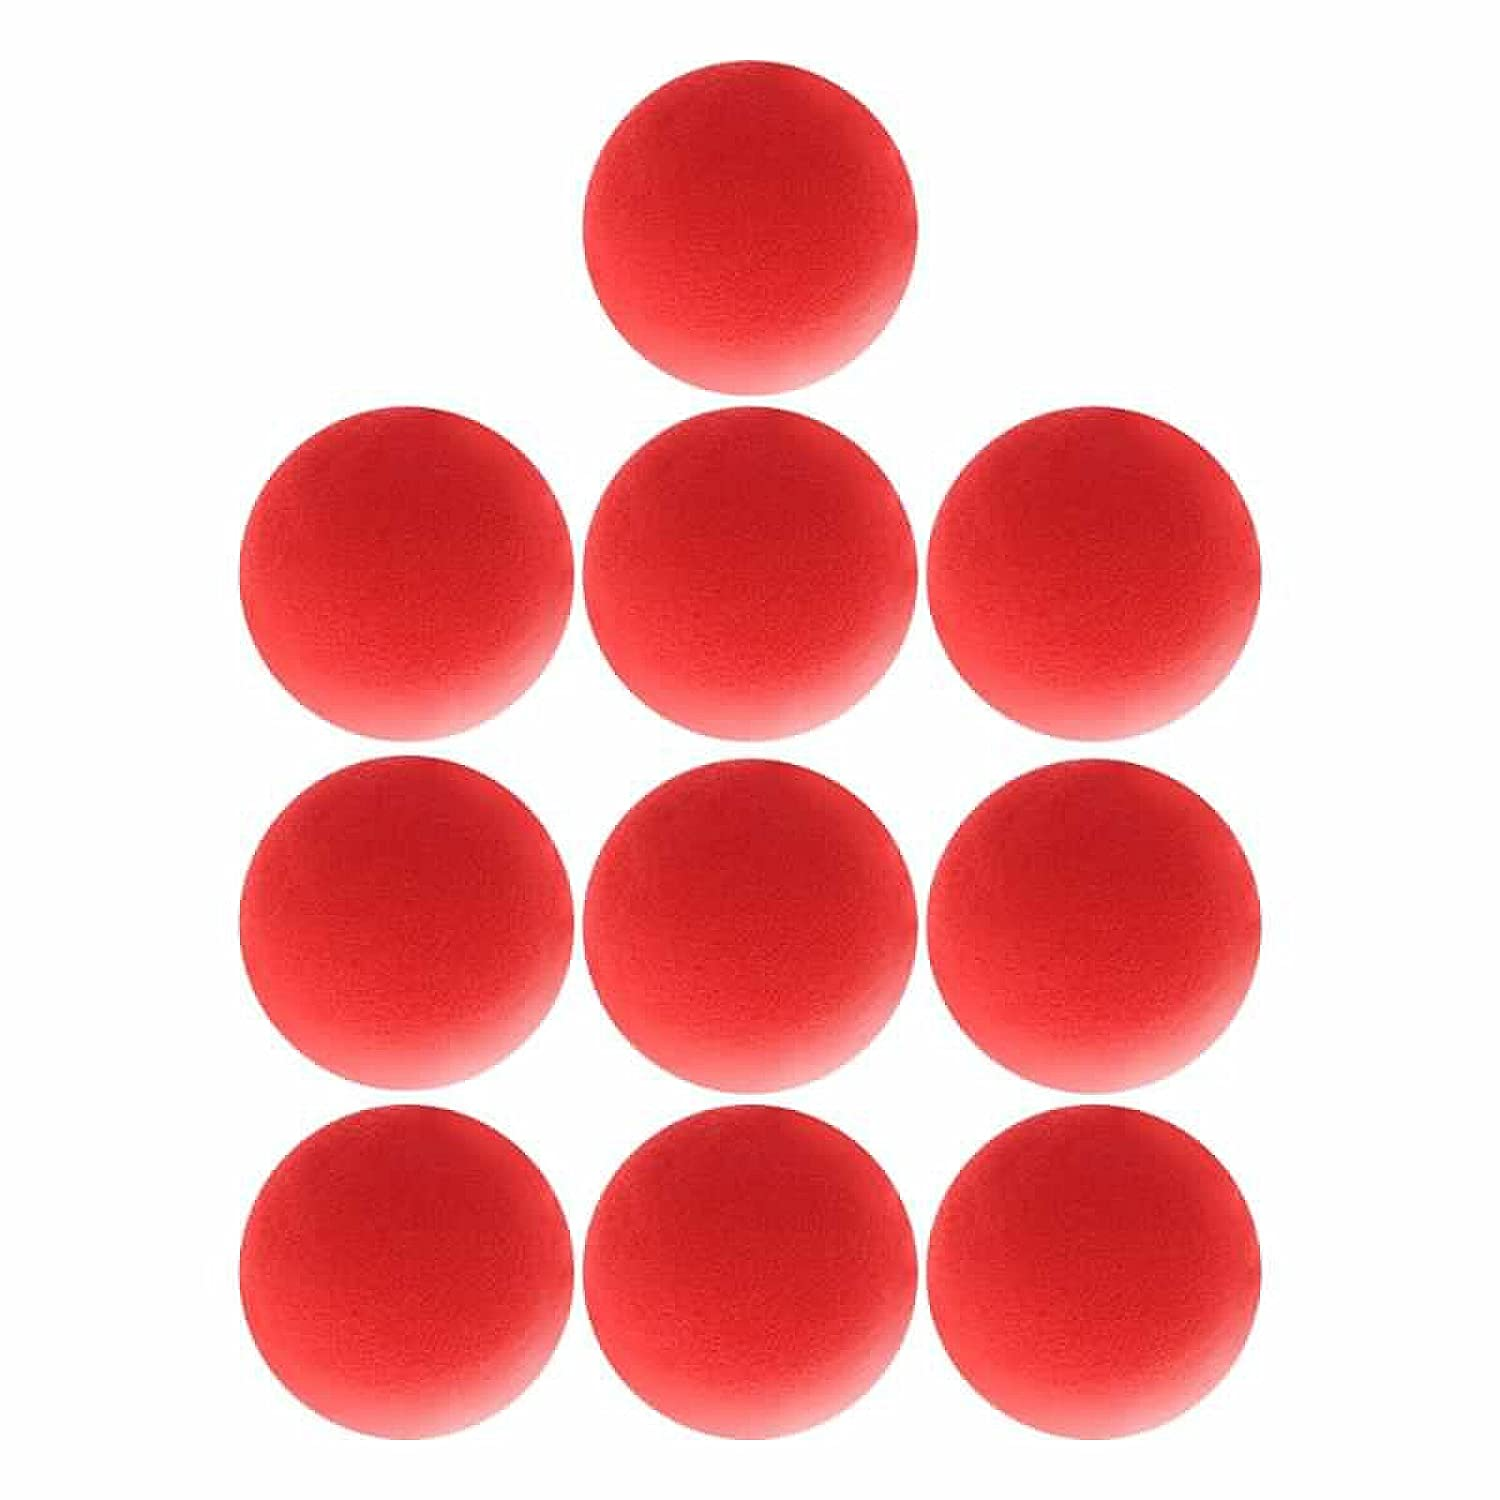 Superior Zrl® Red Sponge Ball close-up Magic Street Classical Comedy trick props 4.5 cm, x10 pcs